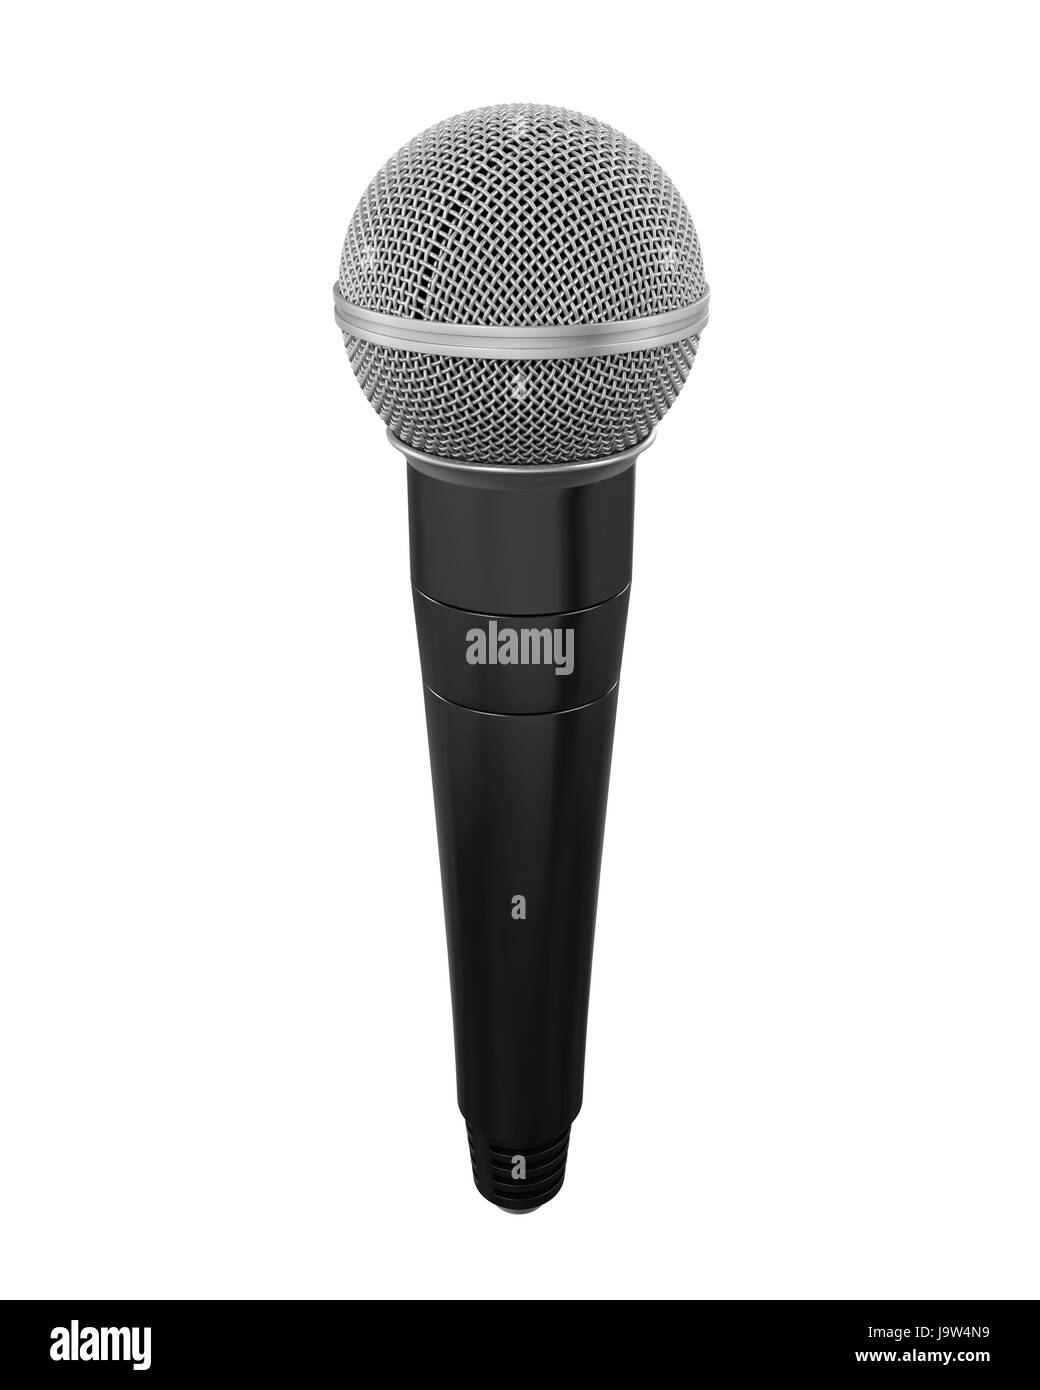 Microphone Isolated - Stock Image